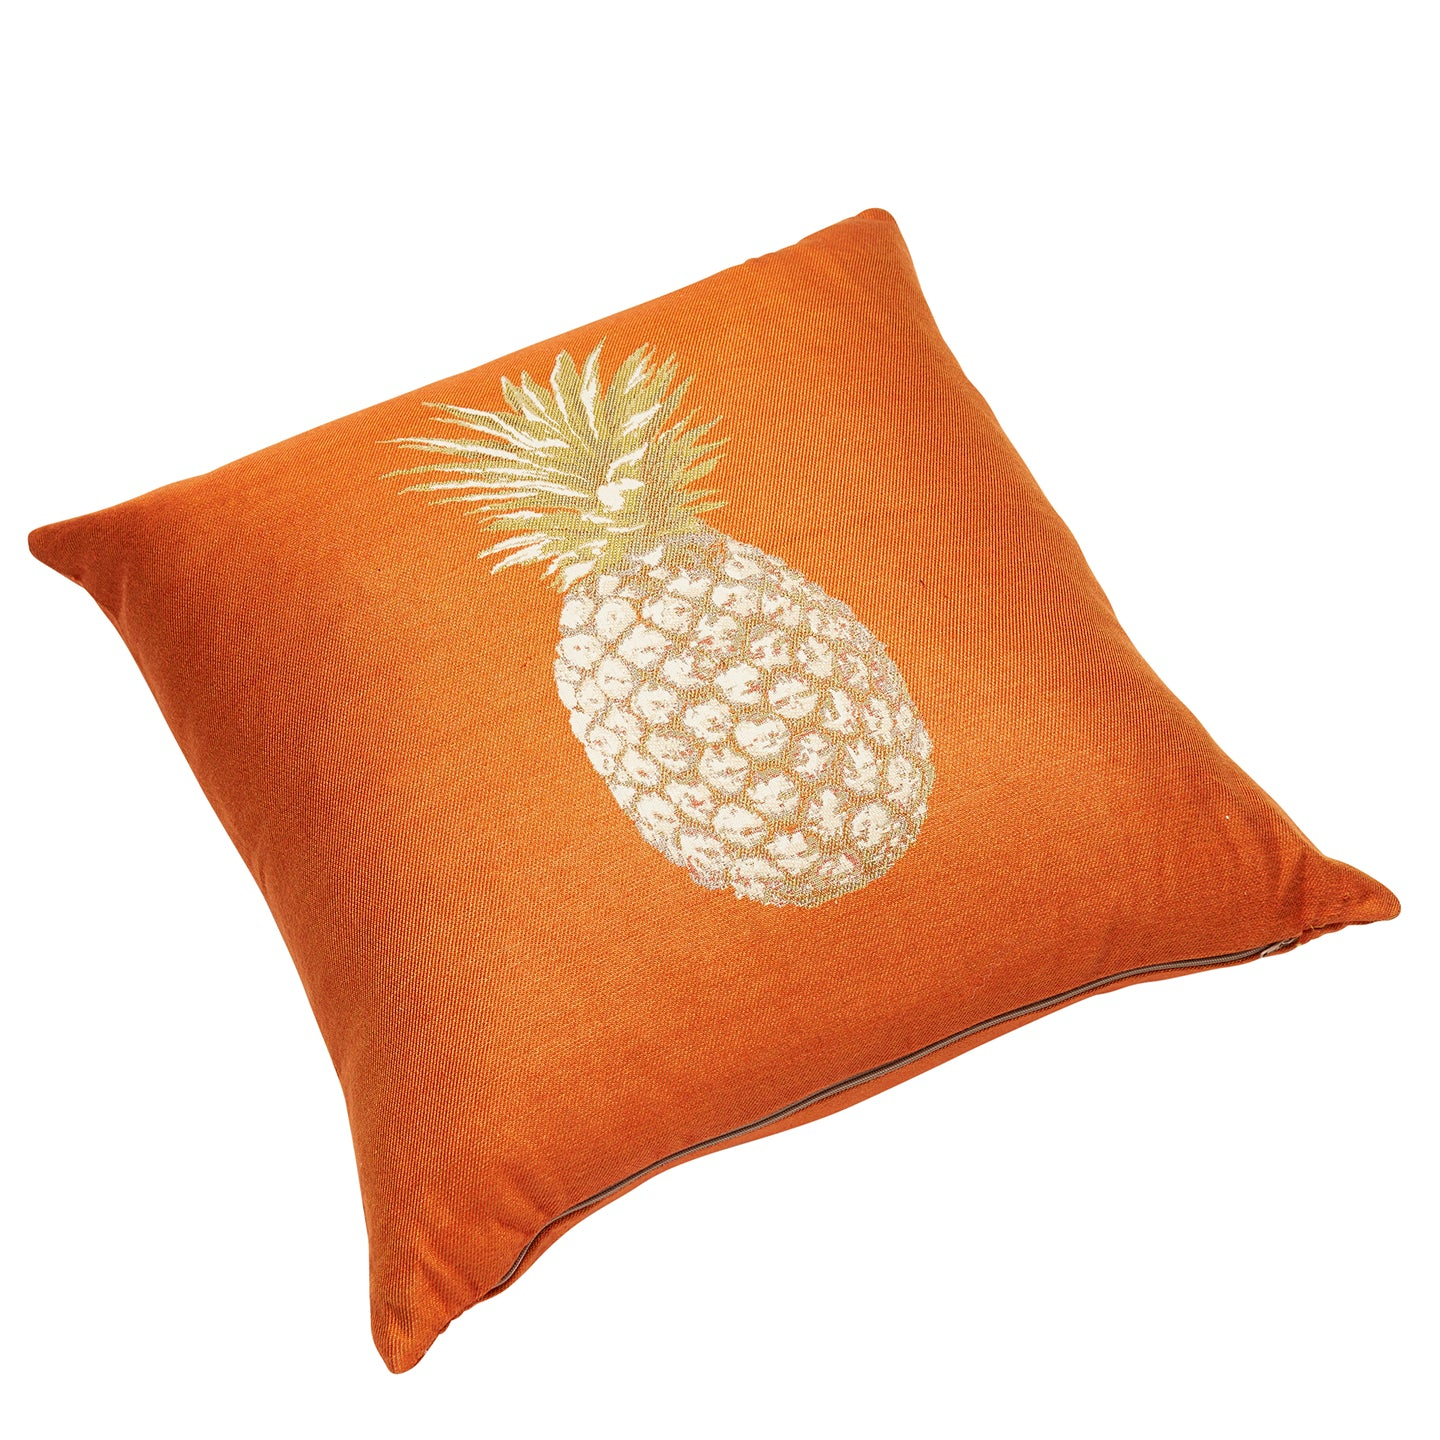 50cm Orange Pineapple Cushion